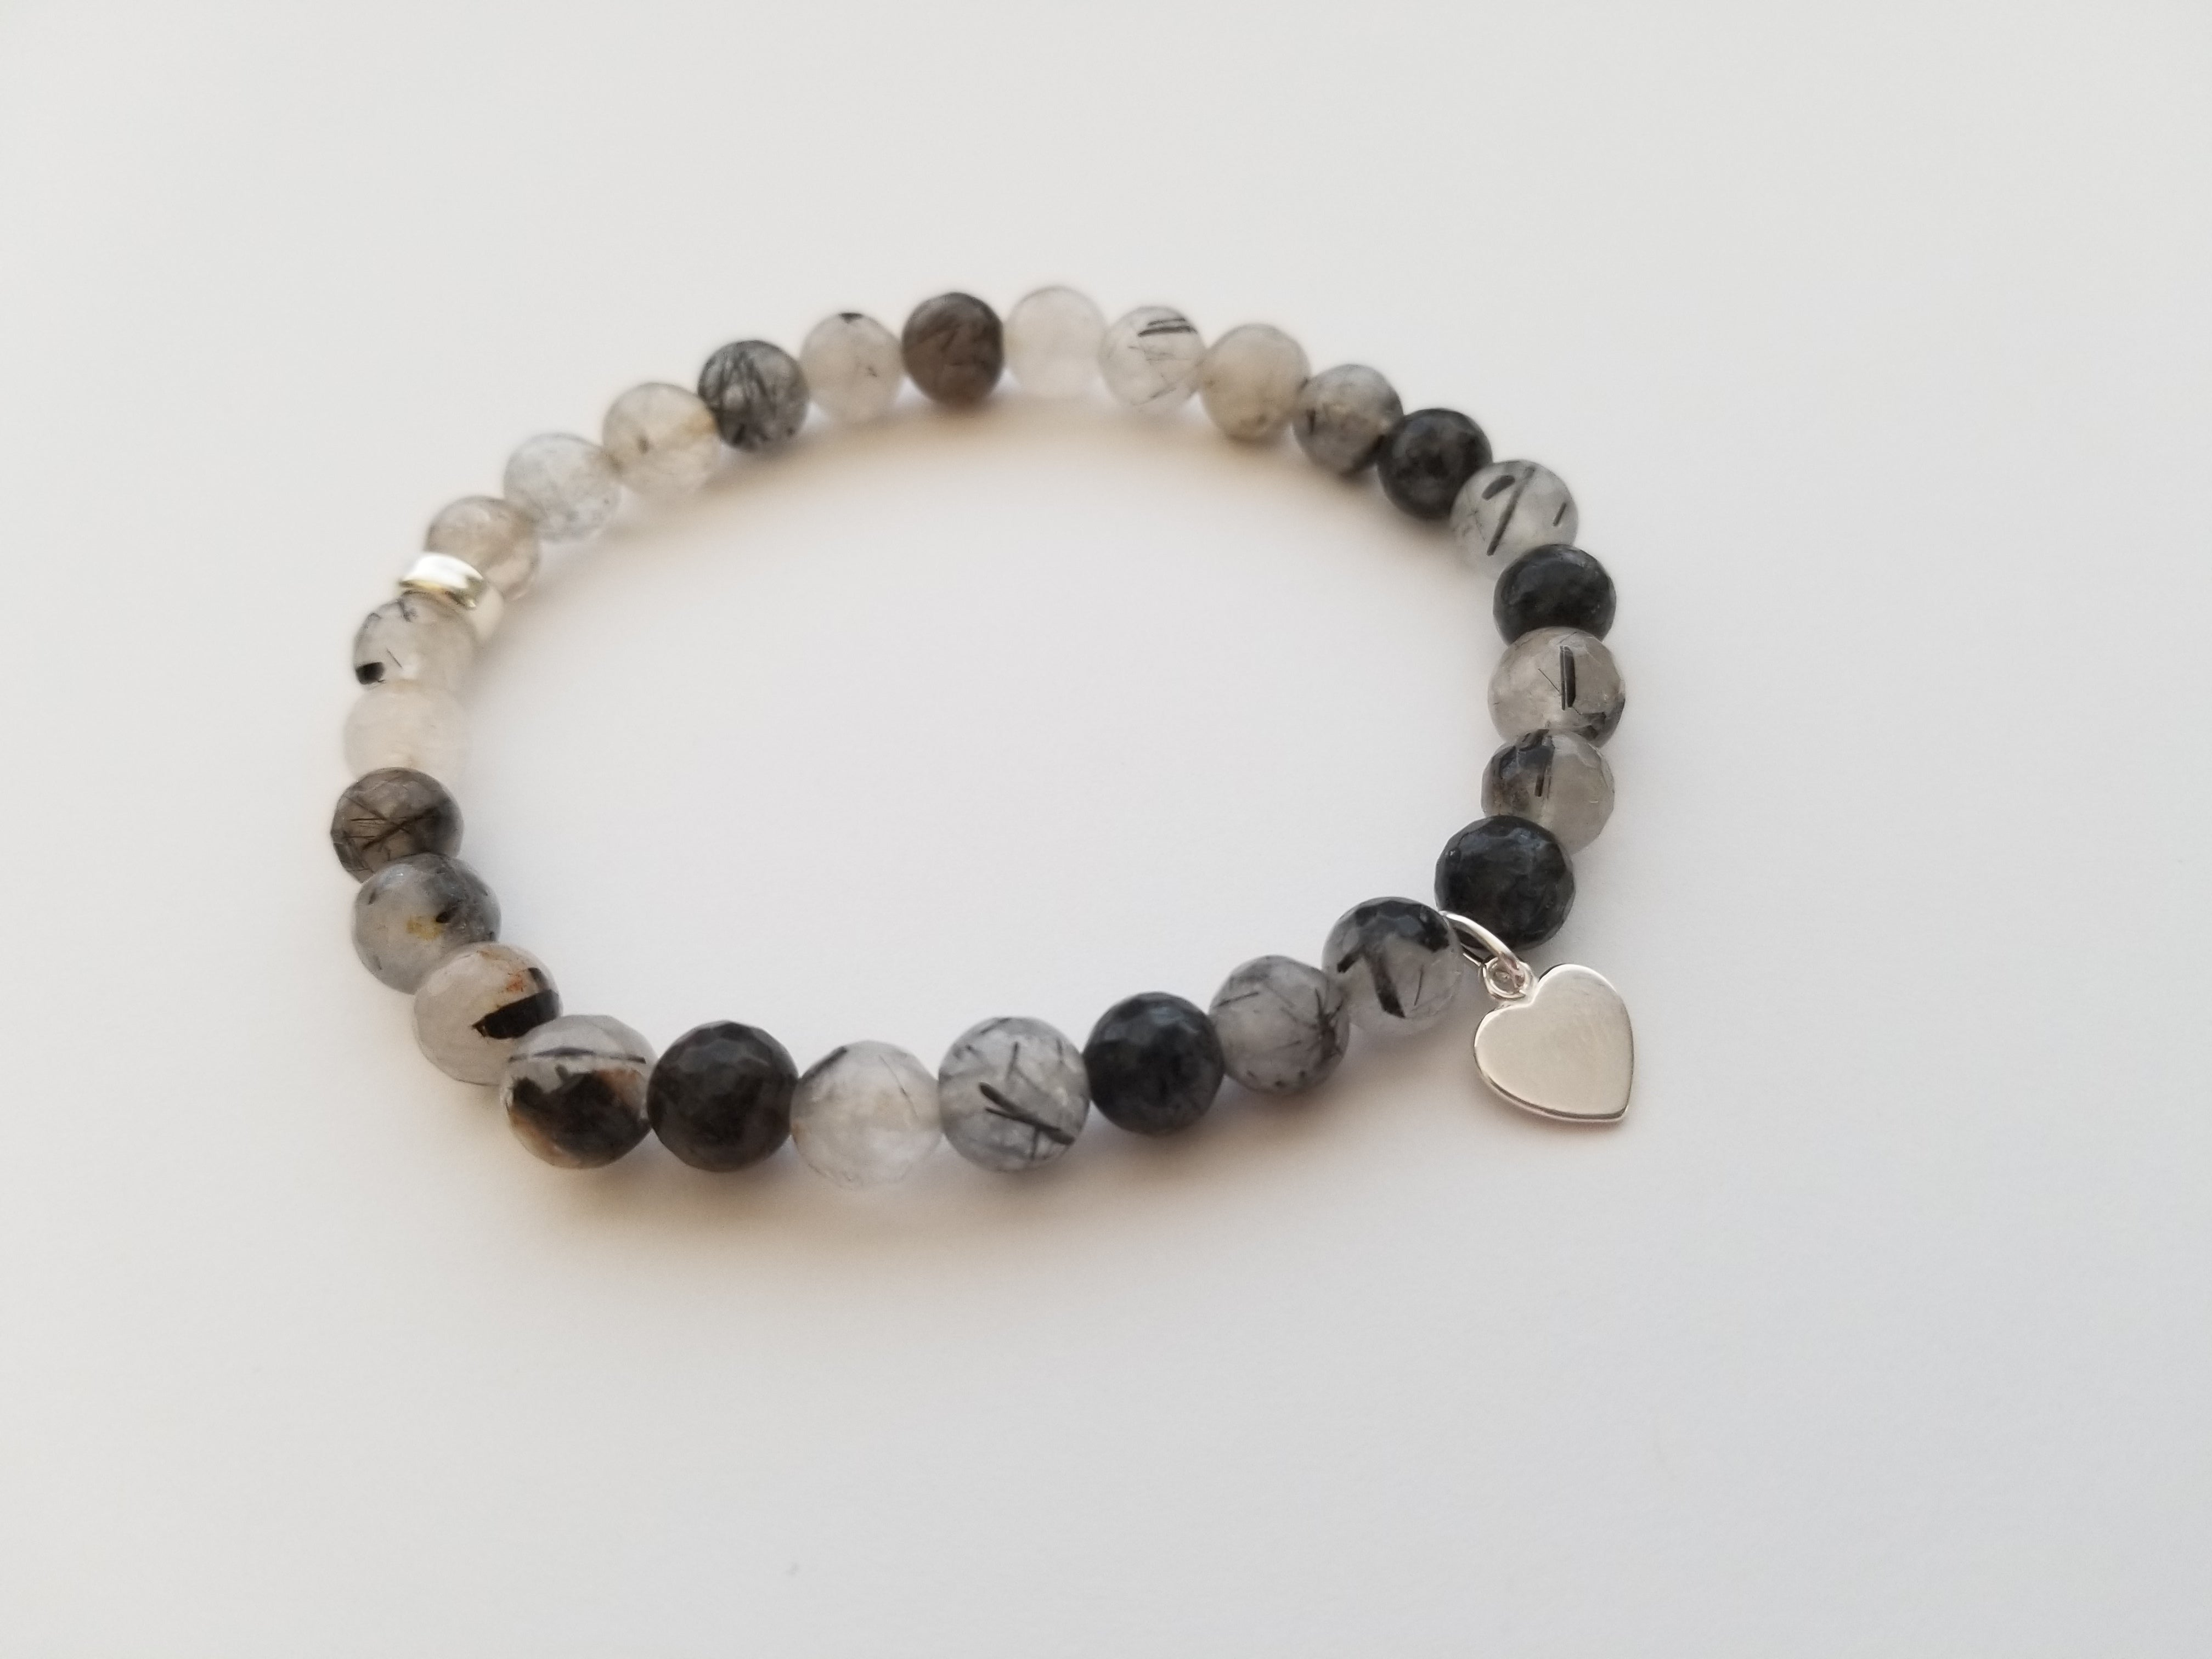 6mm Tourmalated Quartz with Silver Heart Charm Bracelet